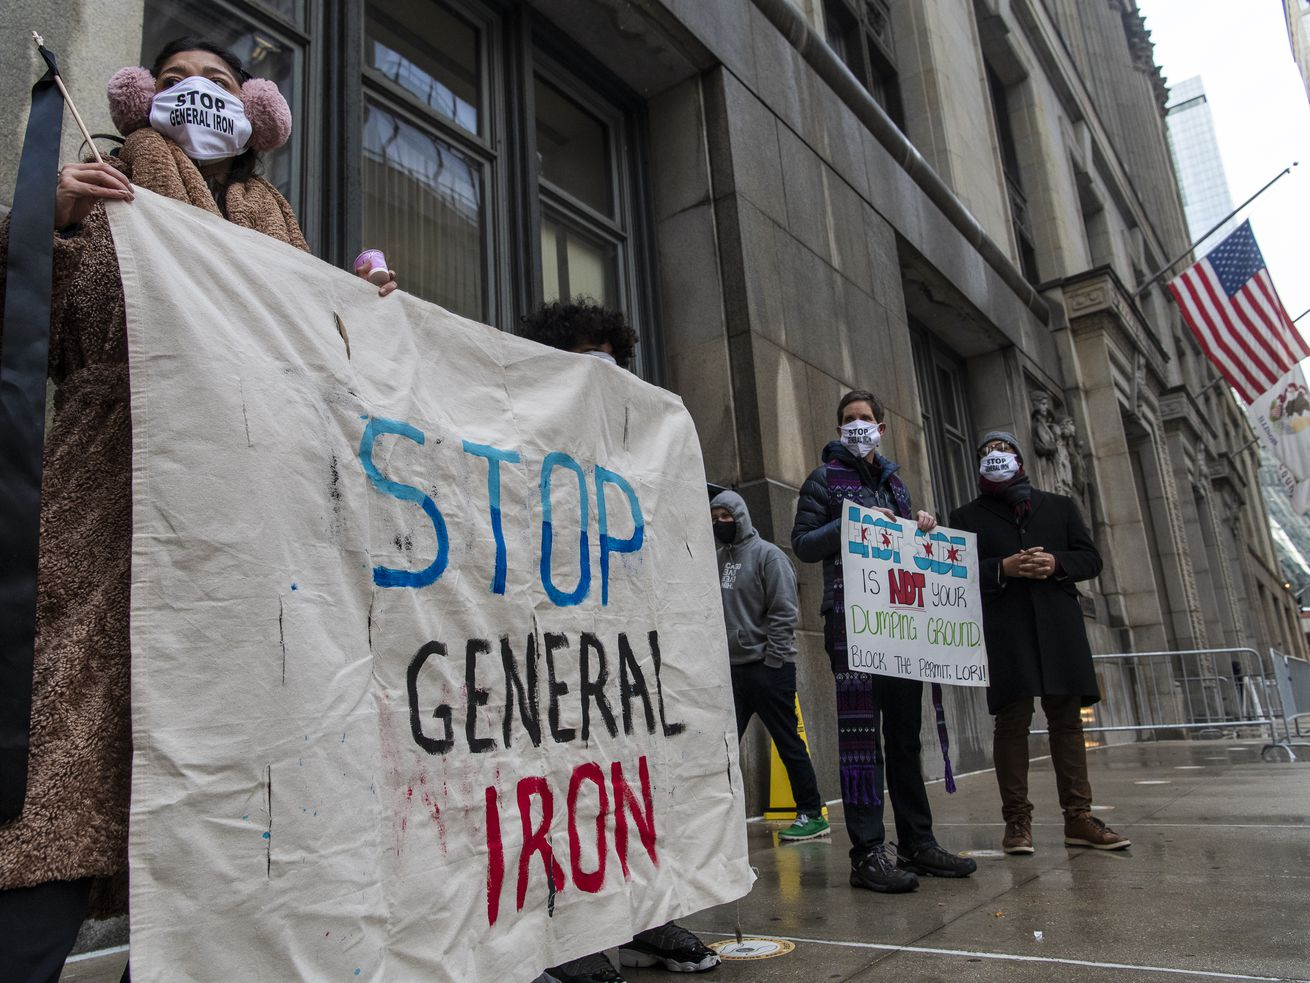 Protesters rallied outside City Hall last month, protesting the relocation of a General Iron metal shredding operation to the Southeast Side.